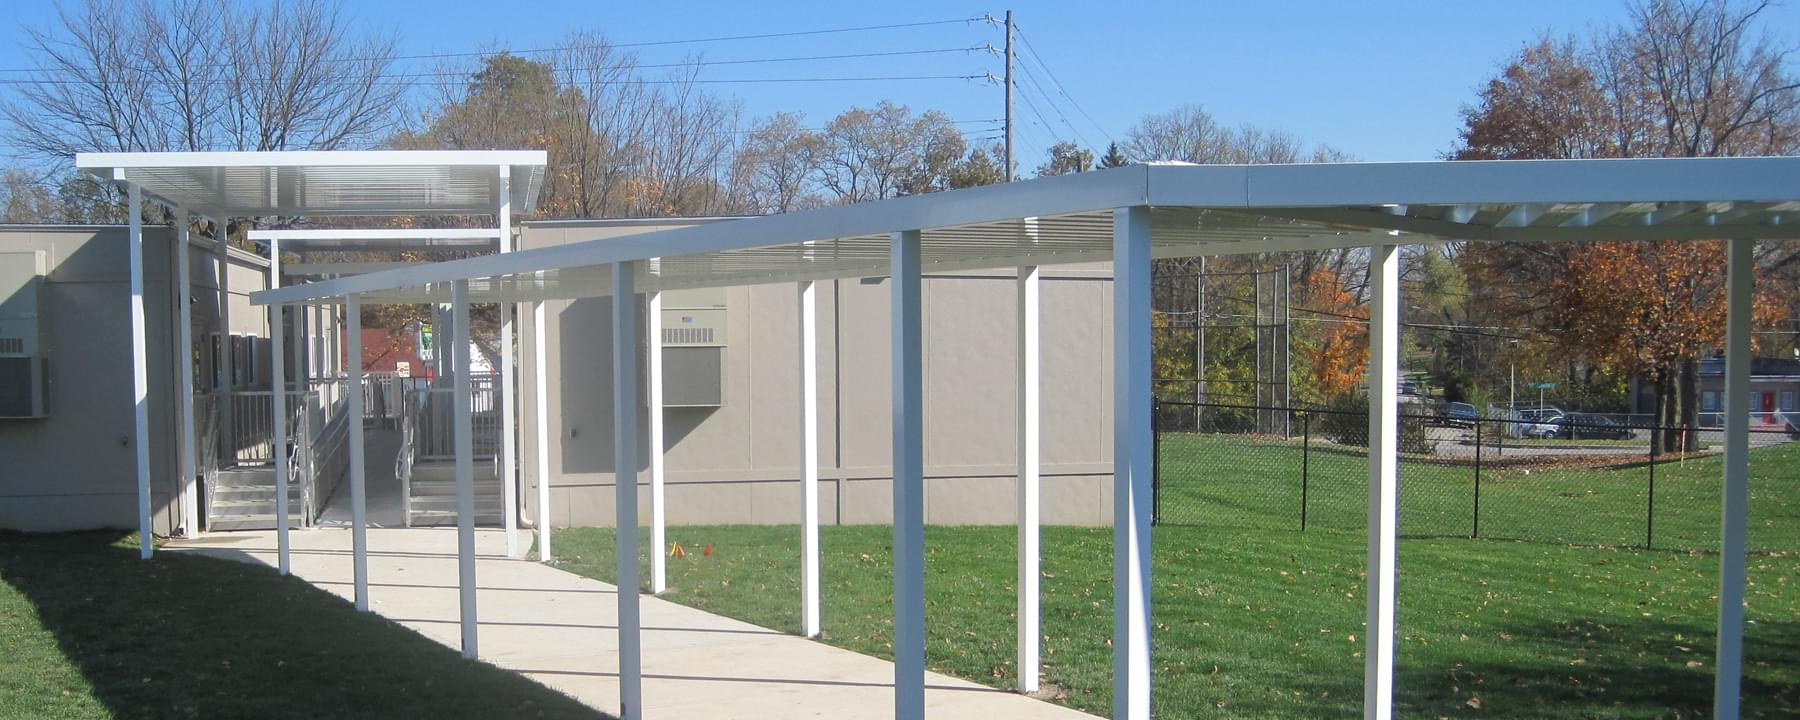 5 Essential Walkway Canopy Elements To Consider